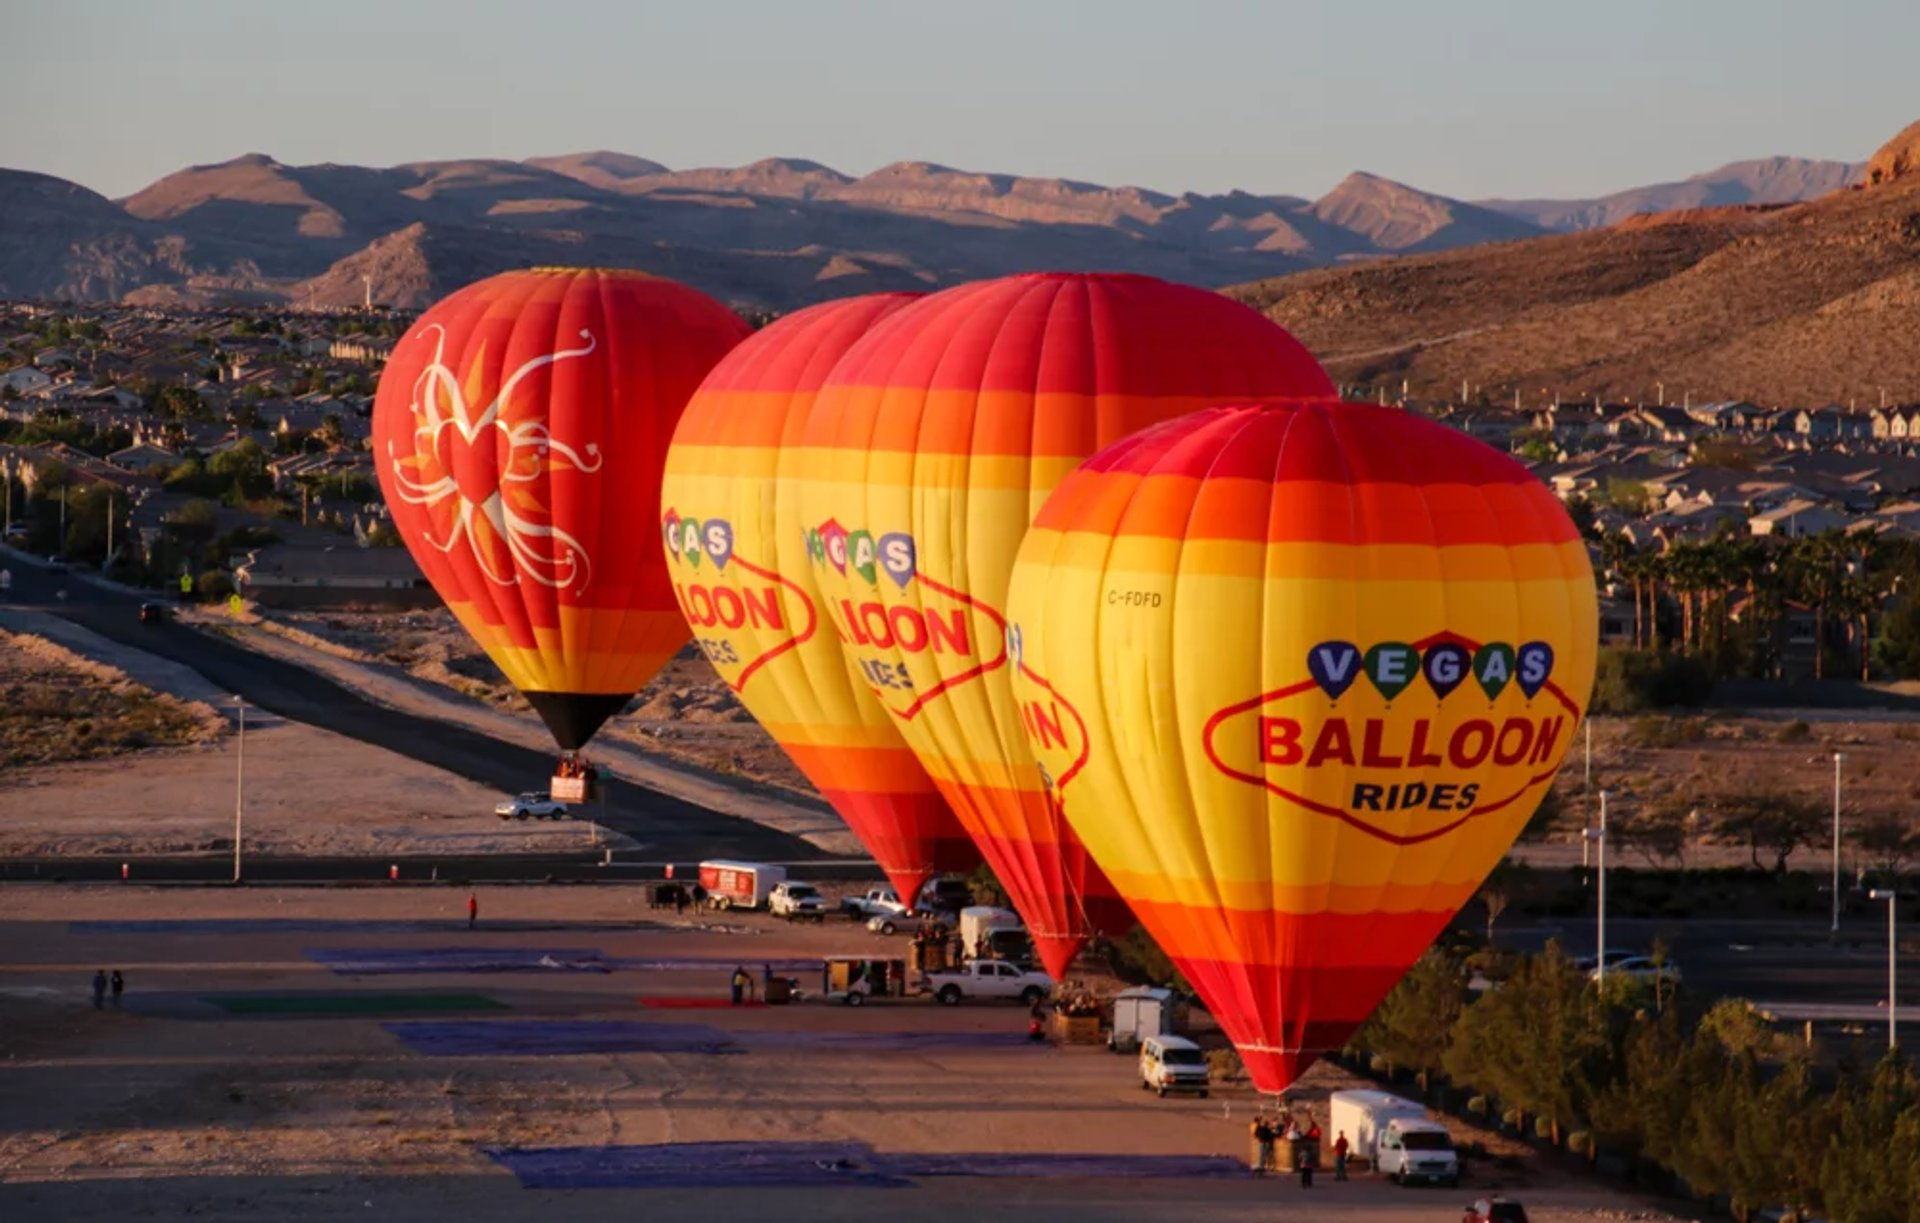 Sunset Hot Air Balloon Rides in Las Vegas - Best Season 2020